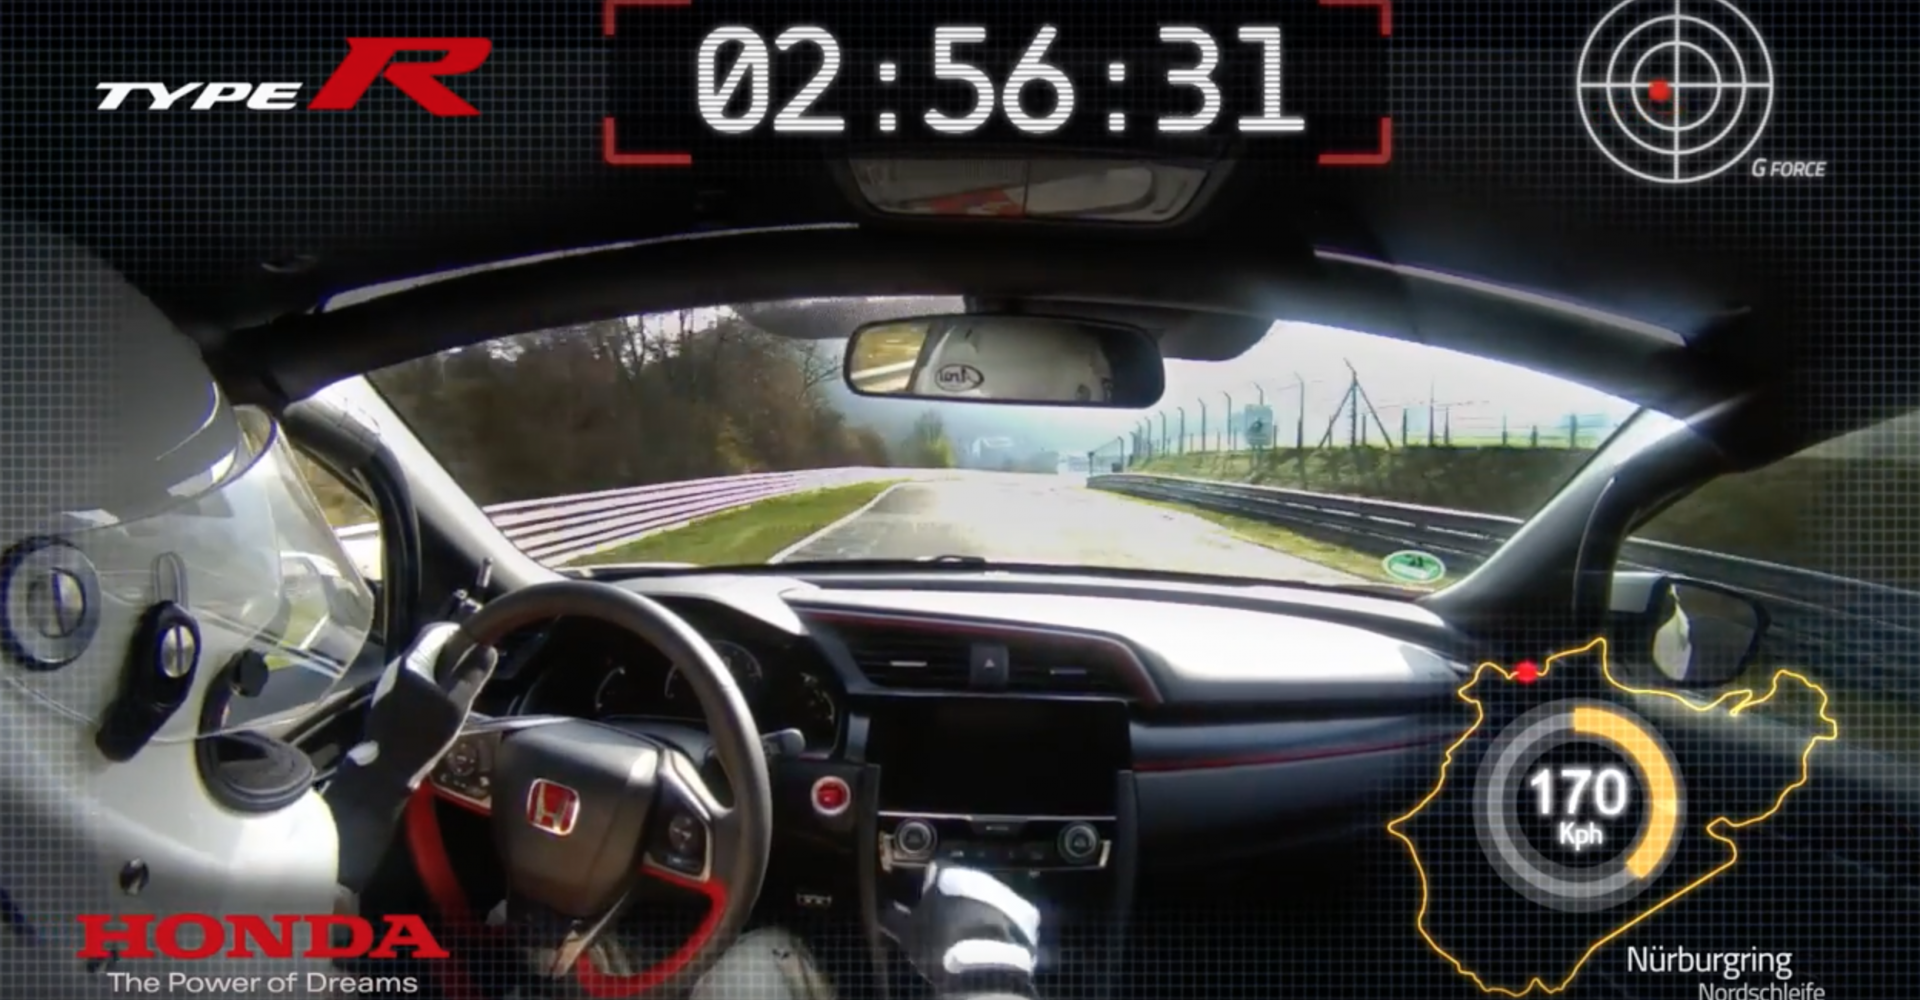 Honda Civic Type R Sets New Lap Record At The Nurburgring